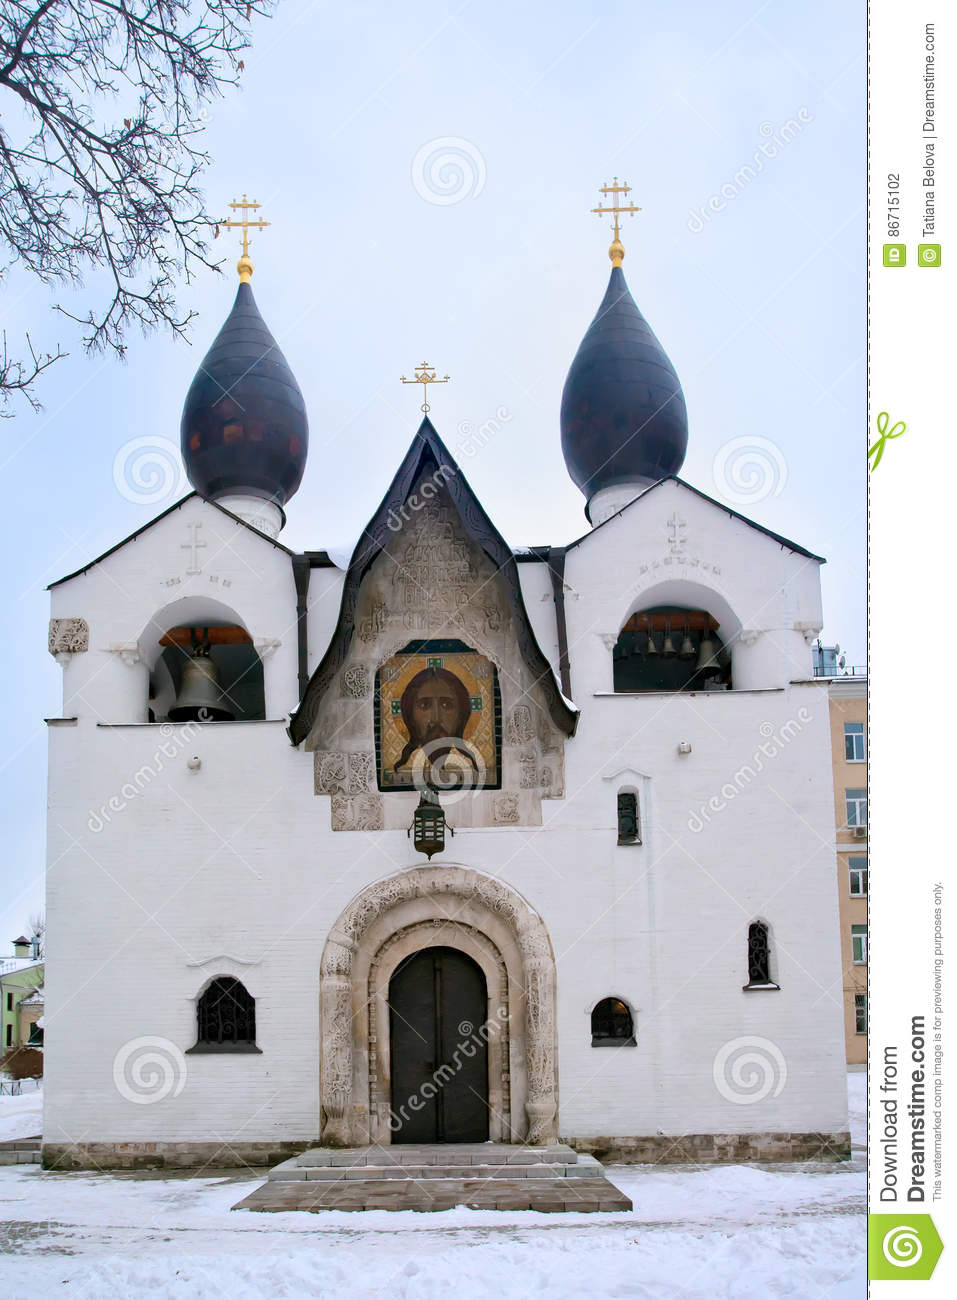 Pokrovsky Convent in Moscow 44